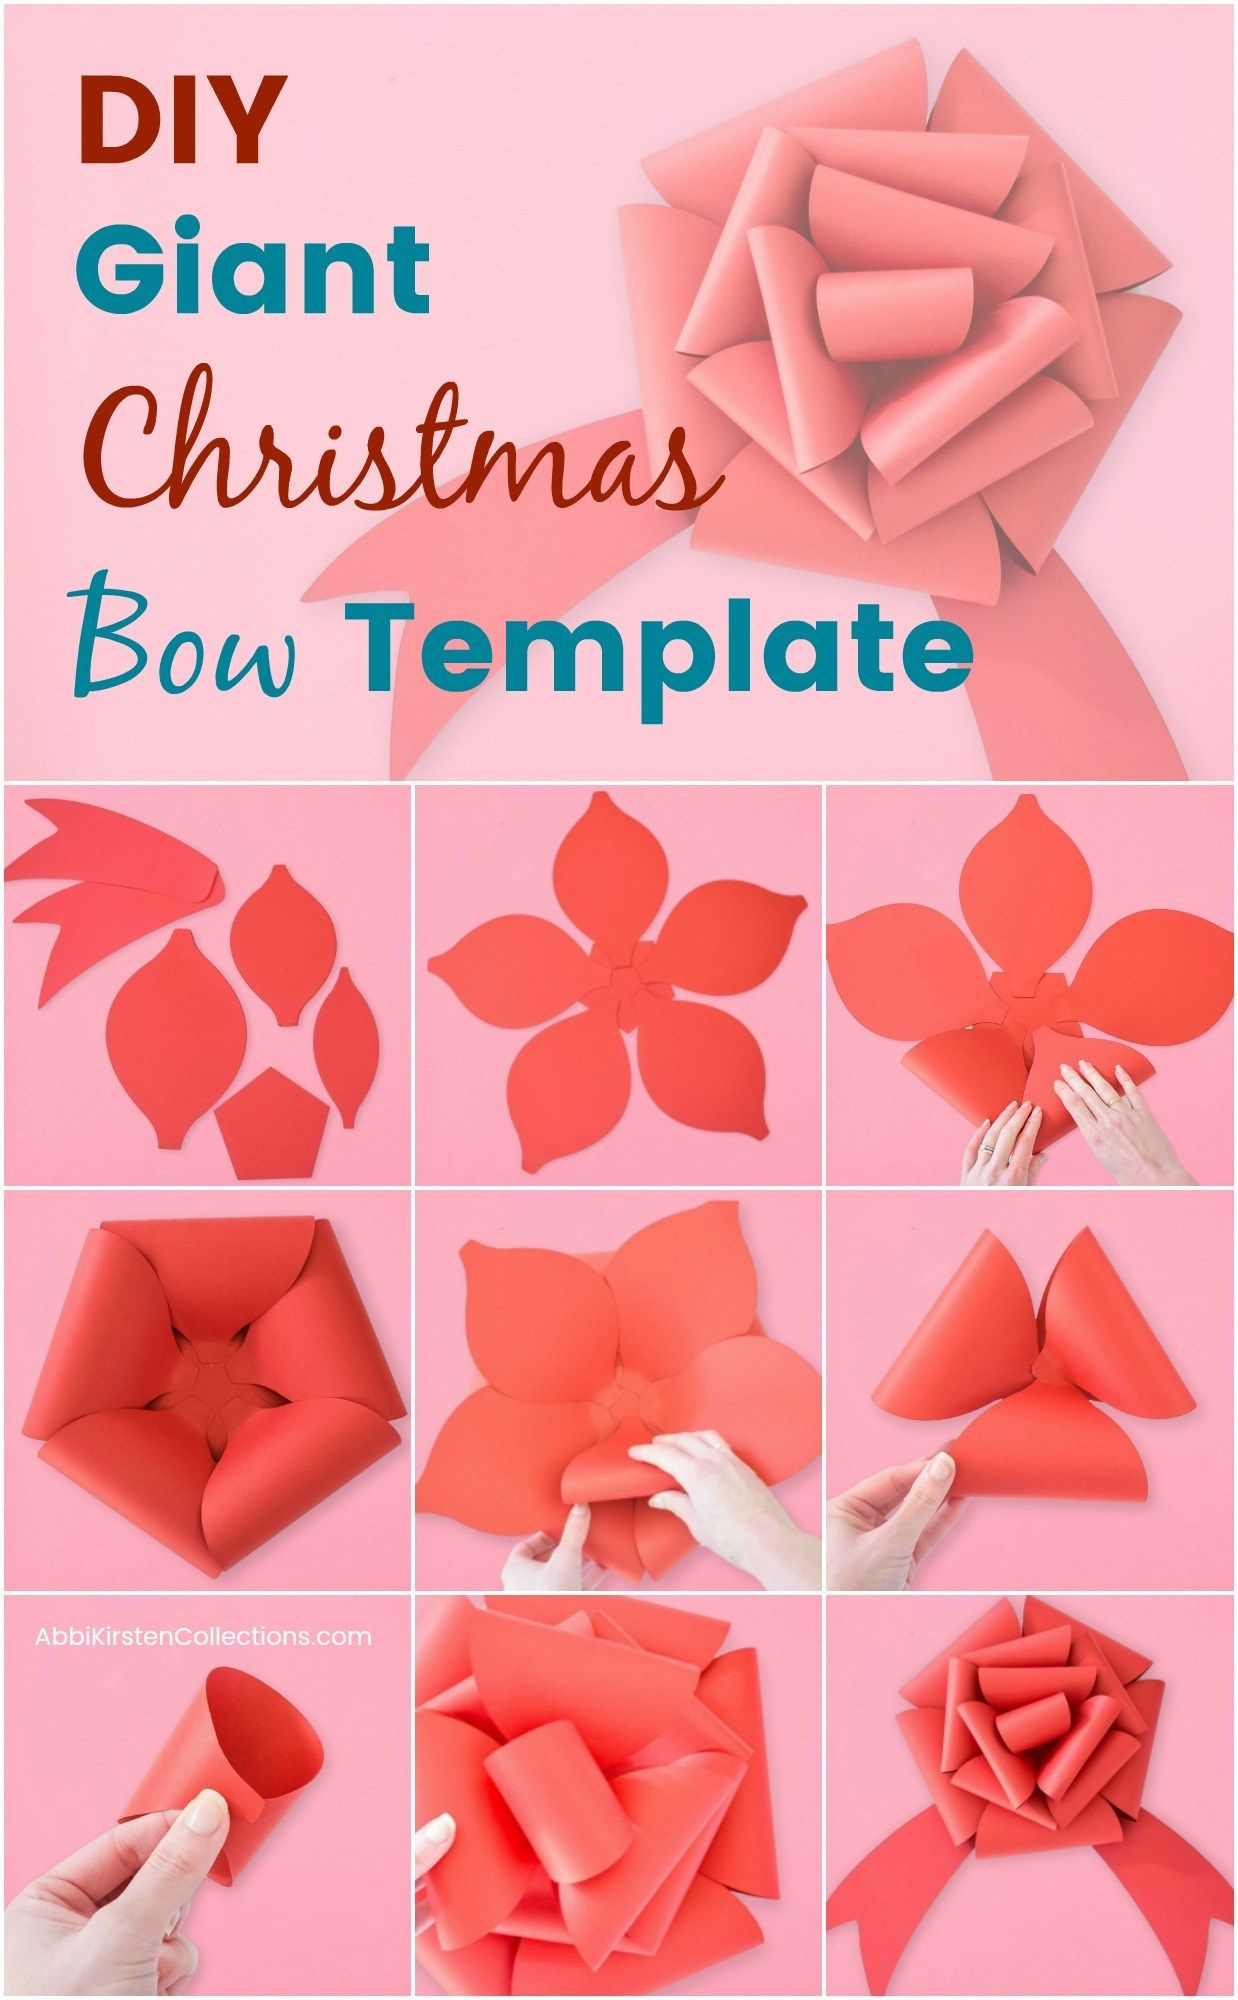 Free Christmas Bow Template Learn How To Craft This DIY Giant Paper Gift